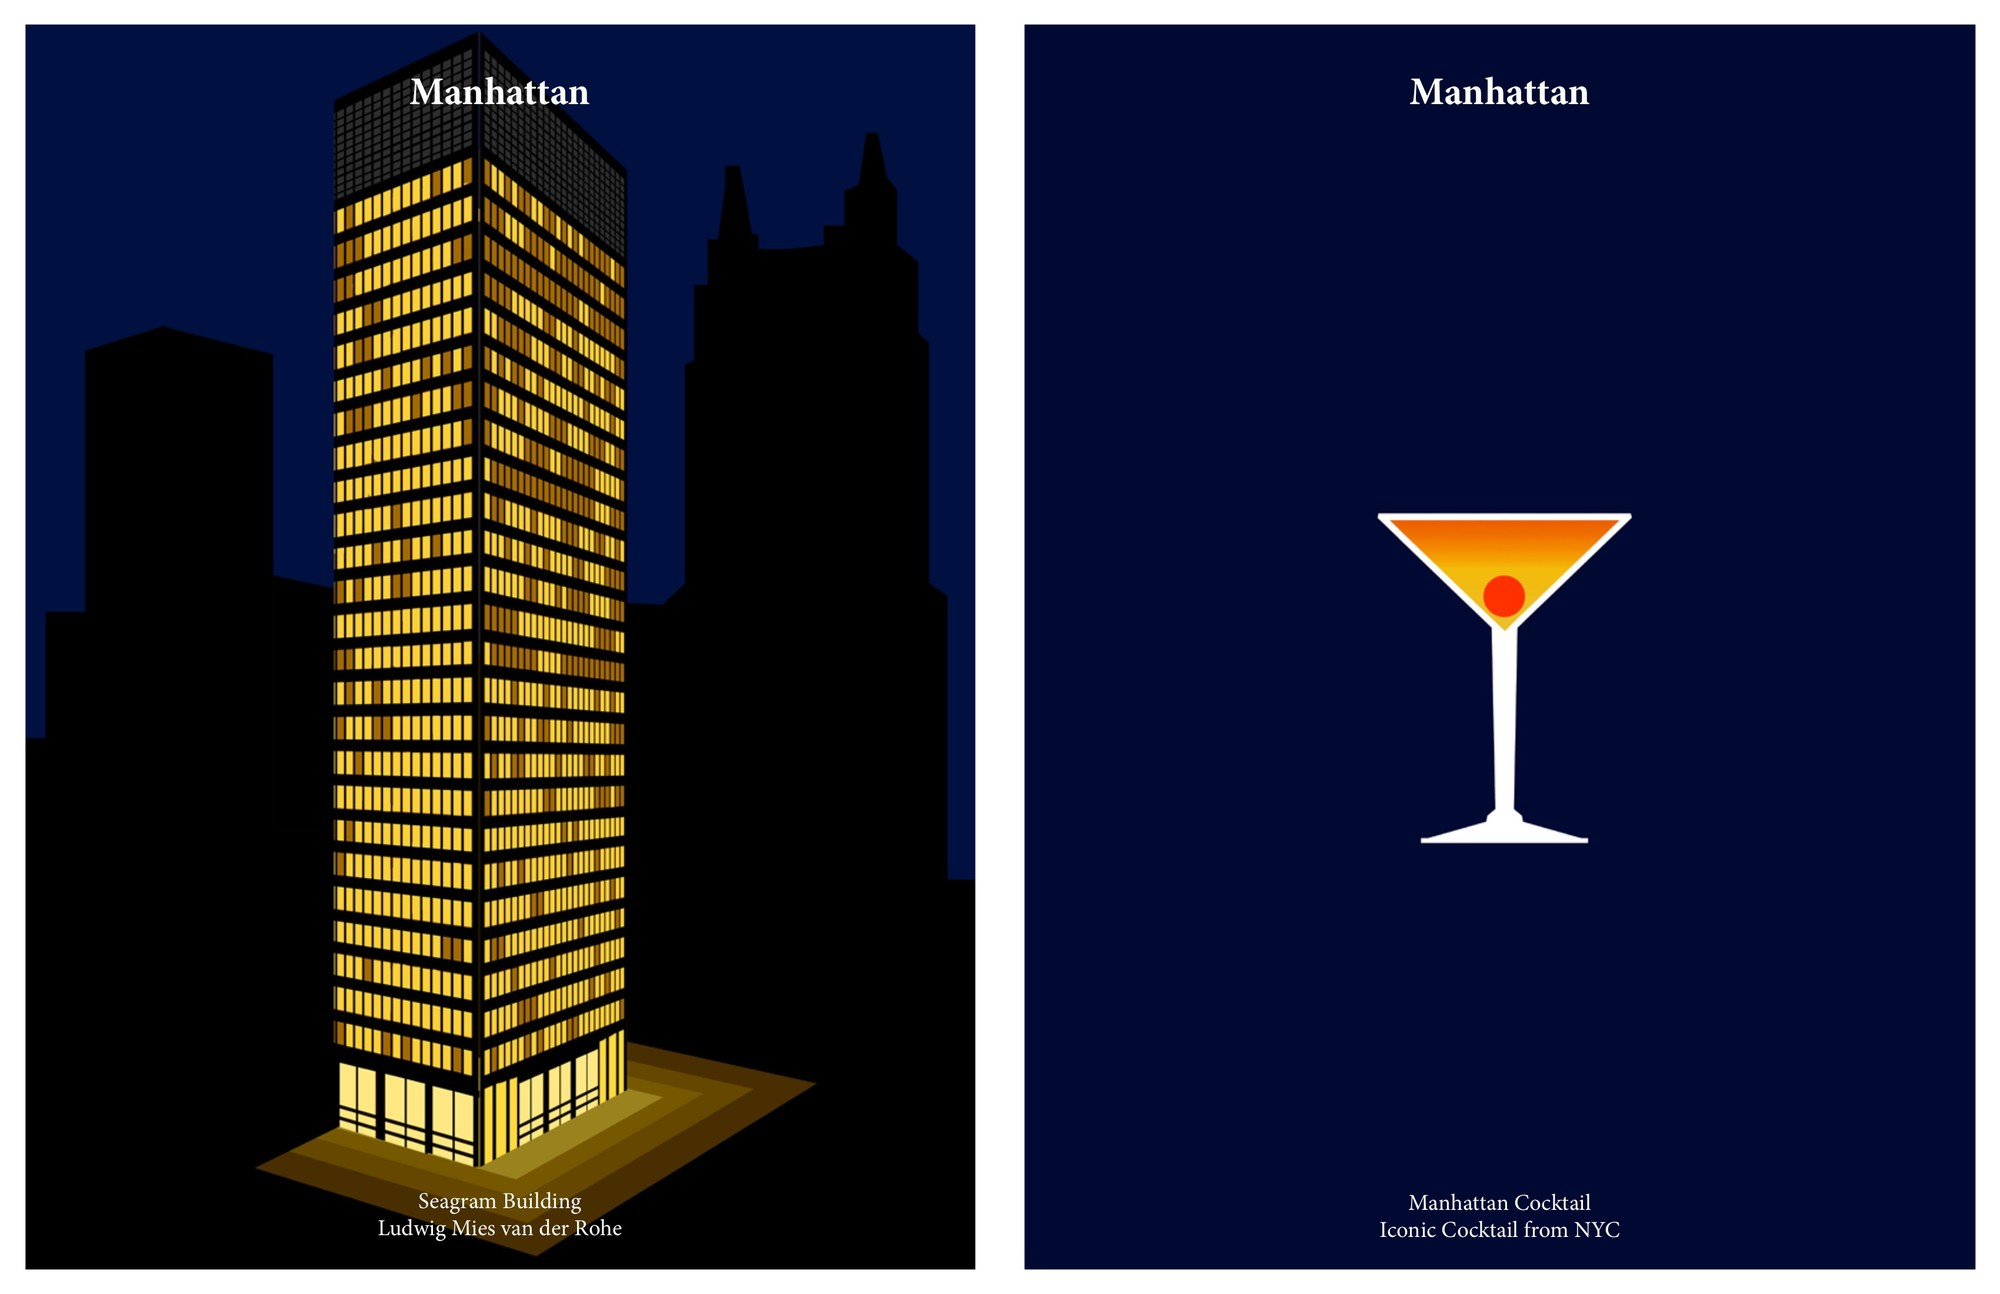 Seagram Building by Mies van der Rohe / Manhattan Cocktail. Image Courtesy of Kosmos Architects